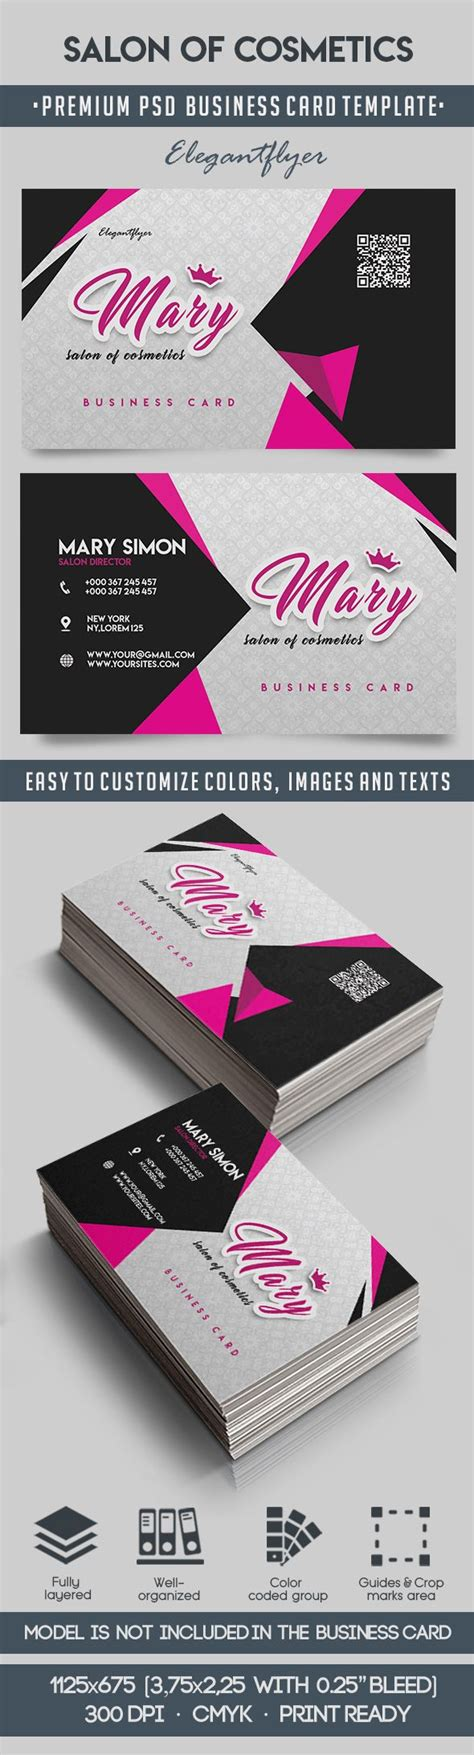 salon business card template psd business card for salon of cosmetics by elegantflyer